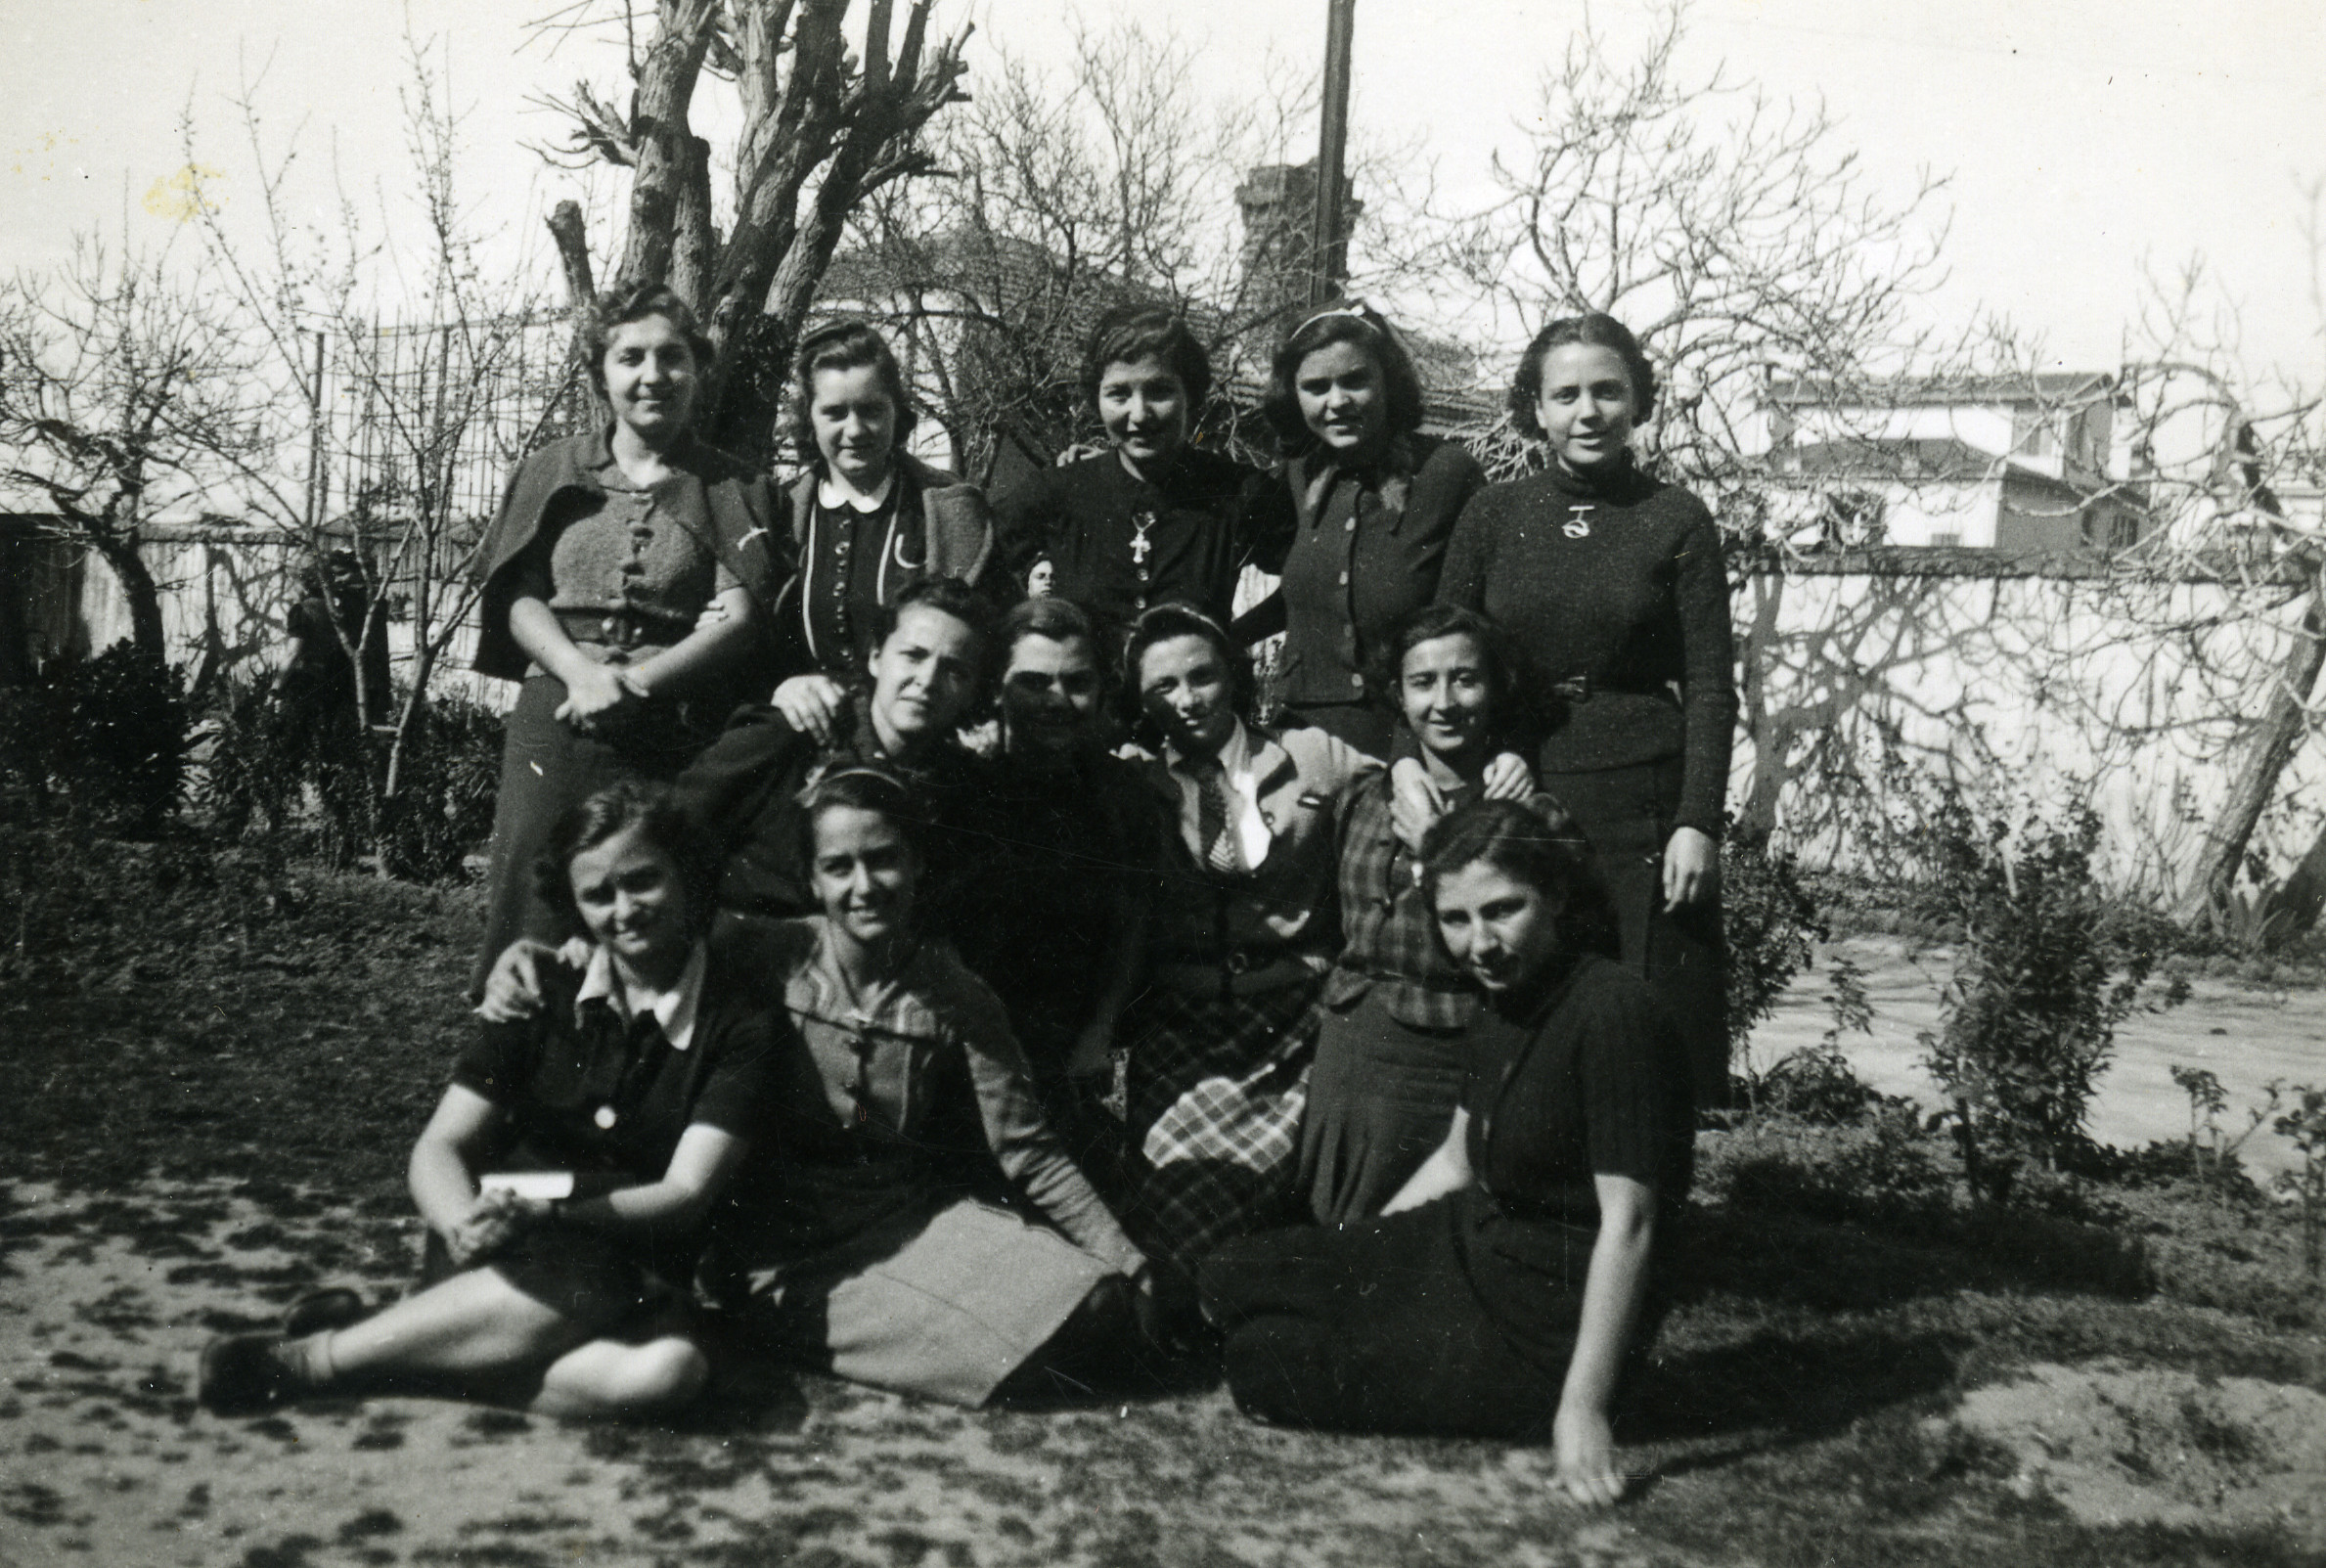 Class photo in a garden in Salonika, March 1939.  Jenny Ezratty is pictured the middle of the center row.